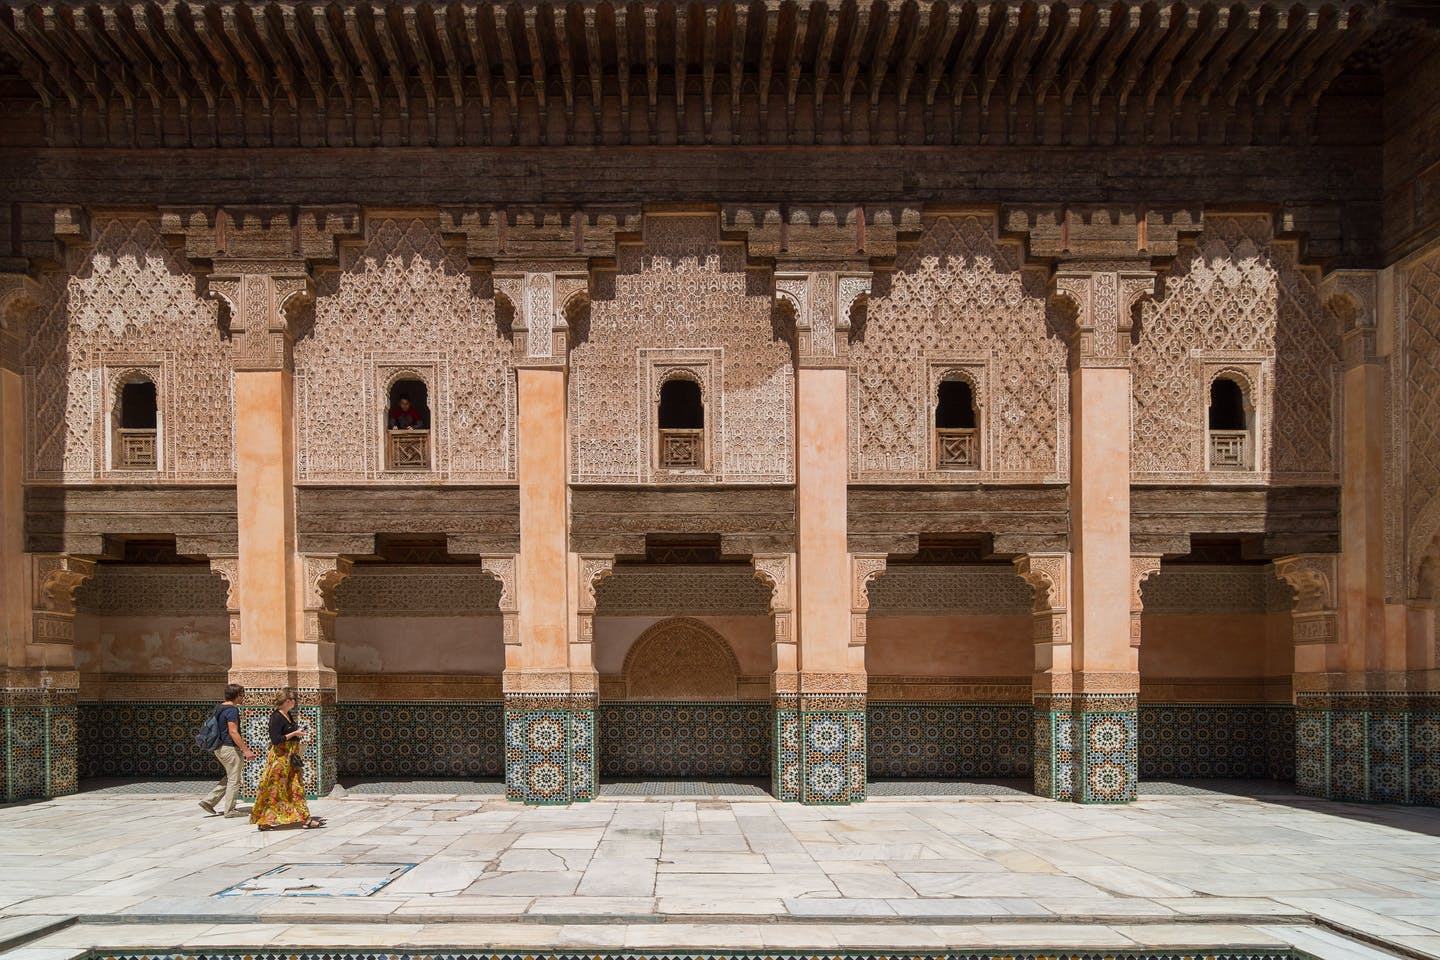 Tourists visiting Medersa Ben Youssef, in Marrakech, Morroco.